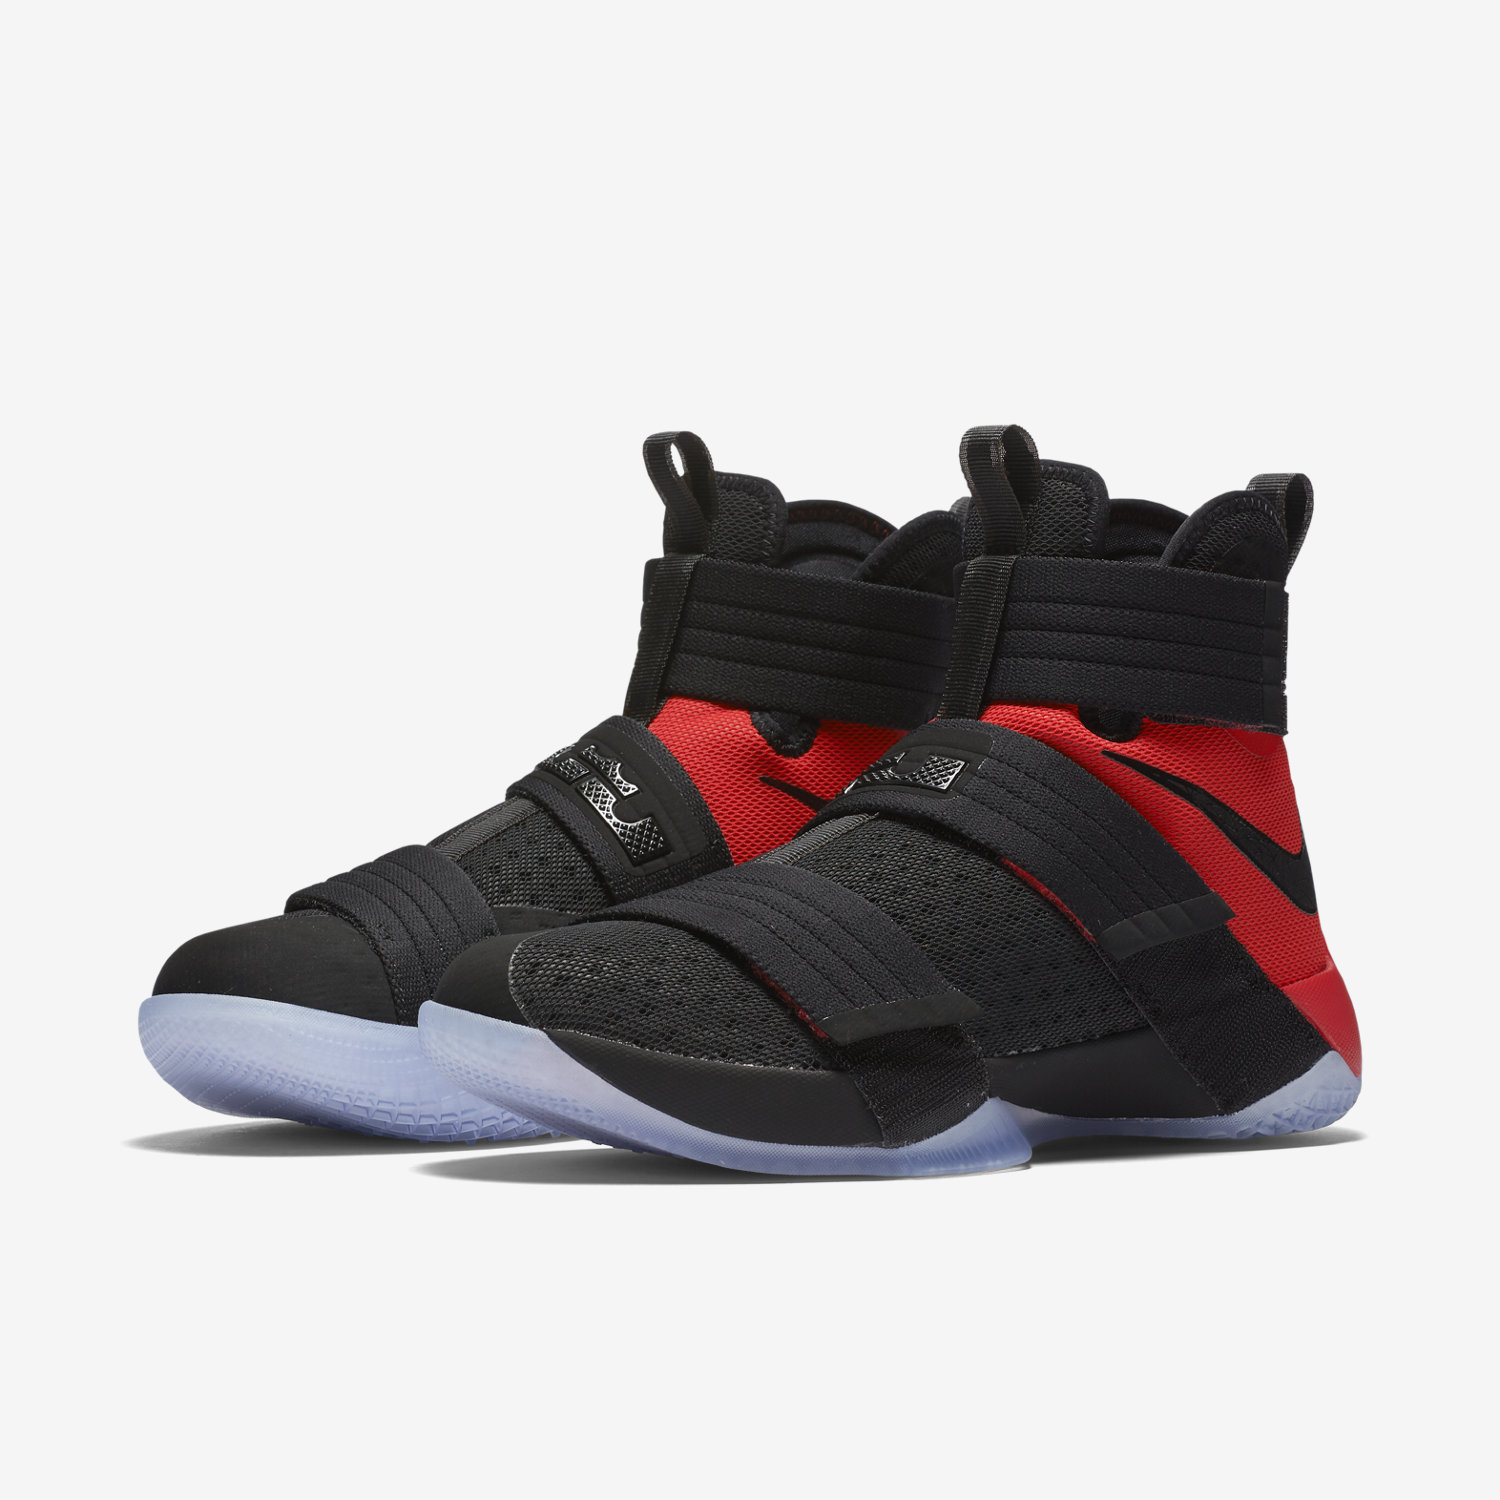 super popular 234ce e1afa ... red blue mens basketball shoes Nike Zoom LeBron Soldier 10 SFG Mens  Basketball Shoe.